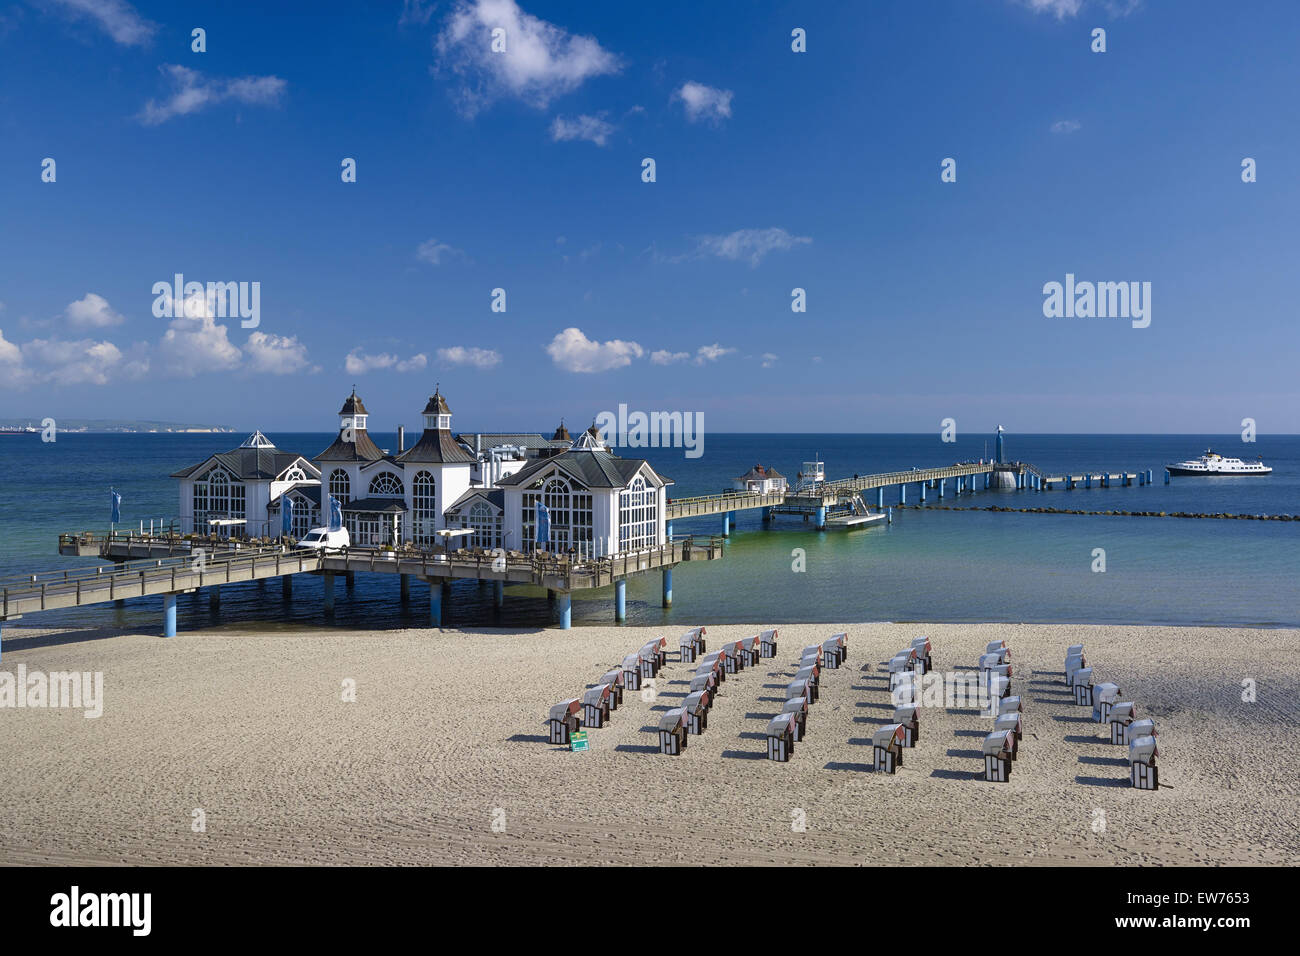 Sellin Pier, Rügen, Germany Stock Photo